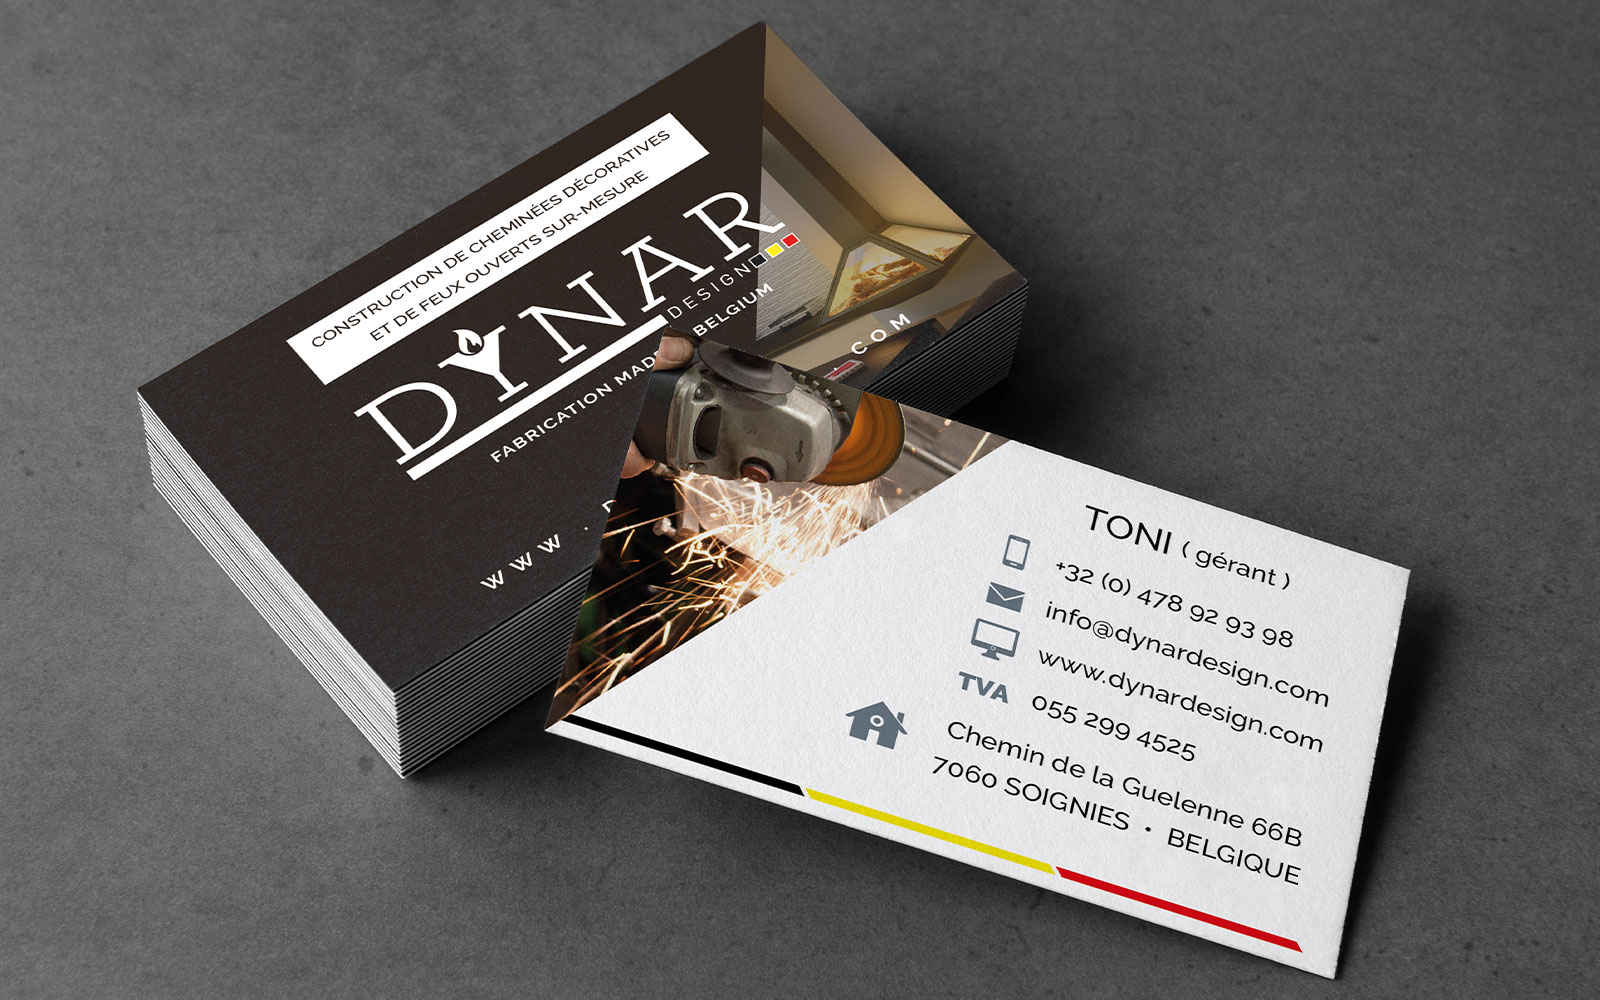 BL-Graphics - Dynar Design - carte de visite